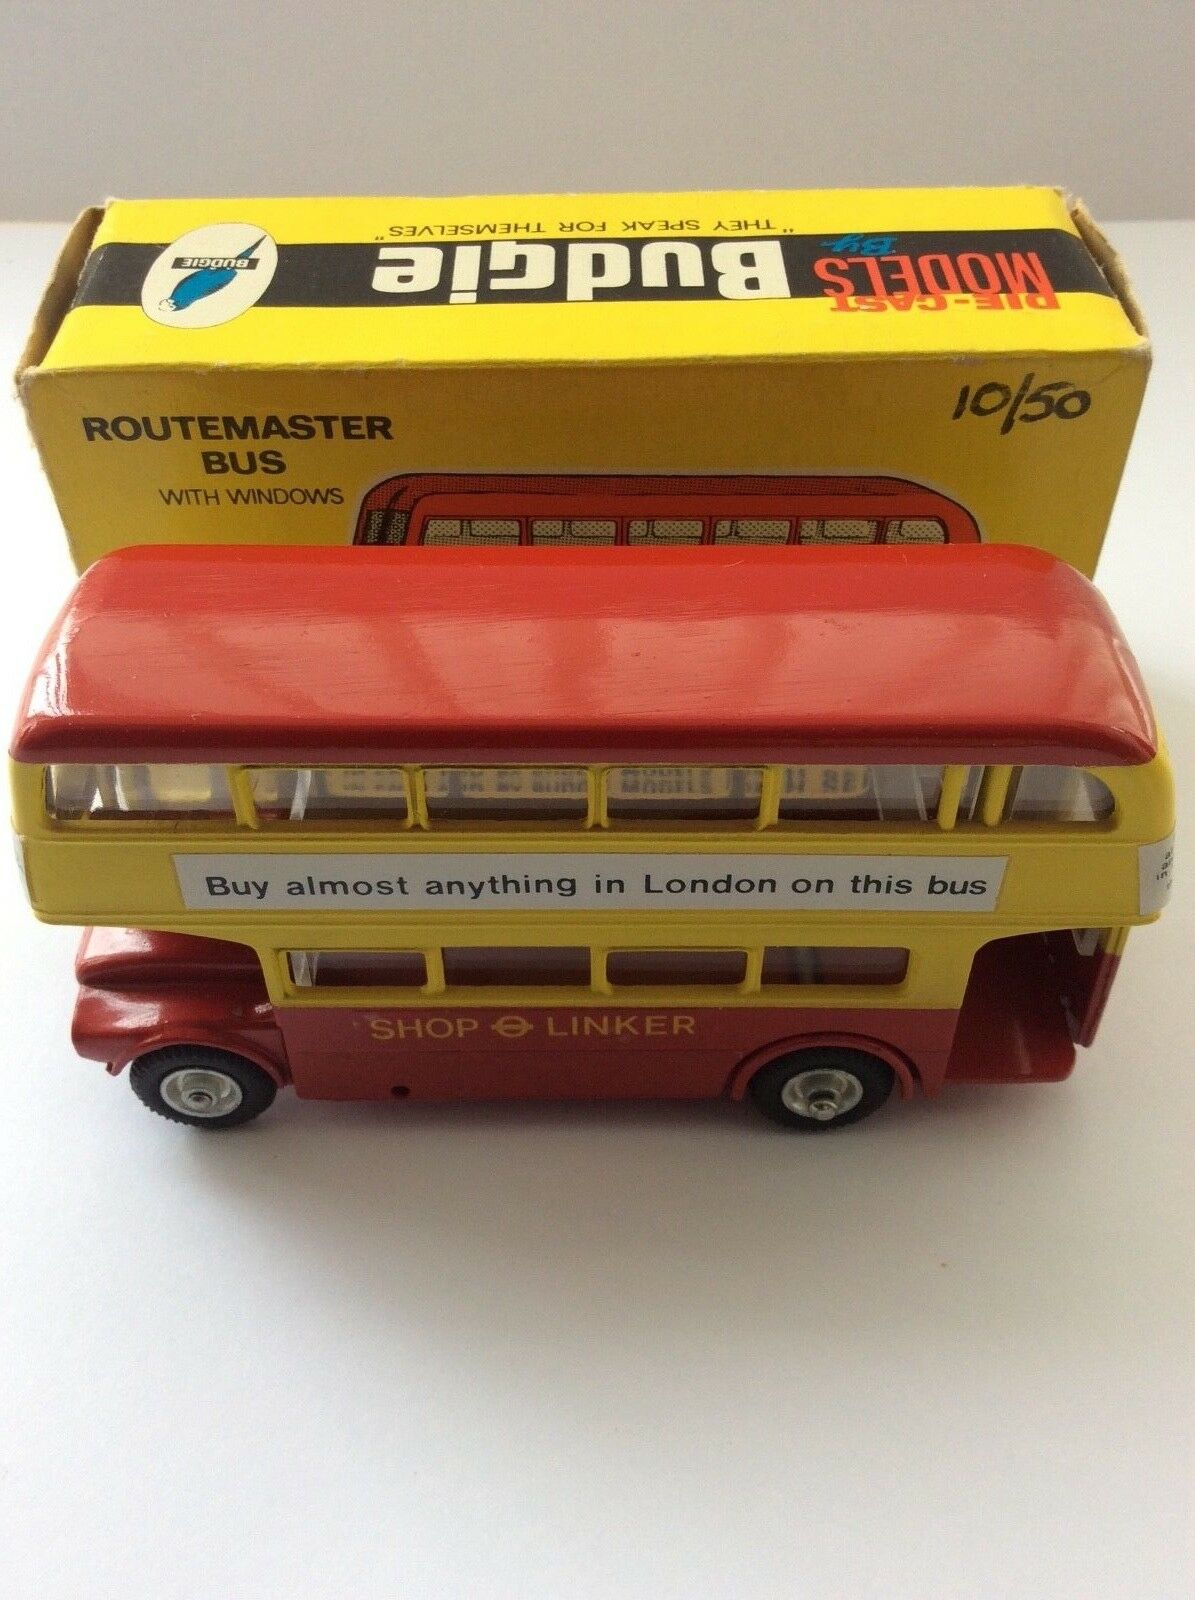 Budgie Toys 236 London Routemaster Bus - SHOP LINKER Model. VNM - Boxed